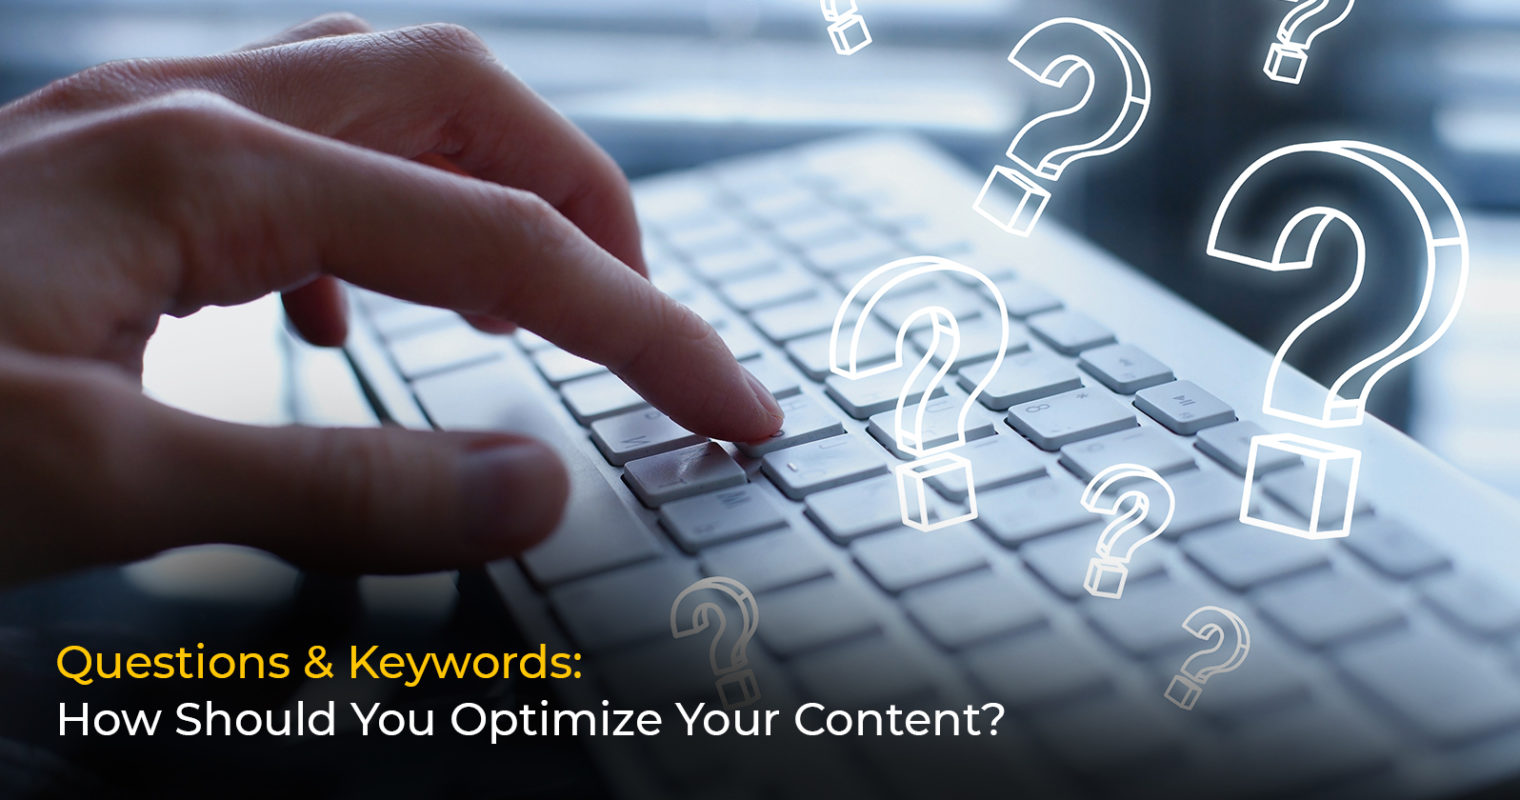 Questions & Keywords: How Should You Optimize Your Content?